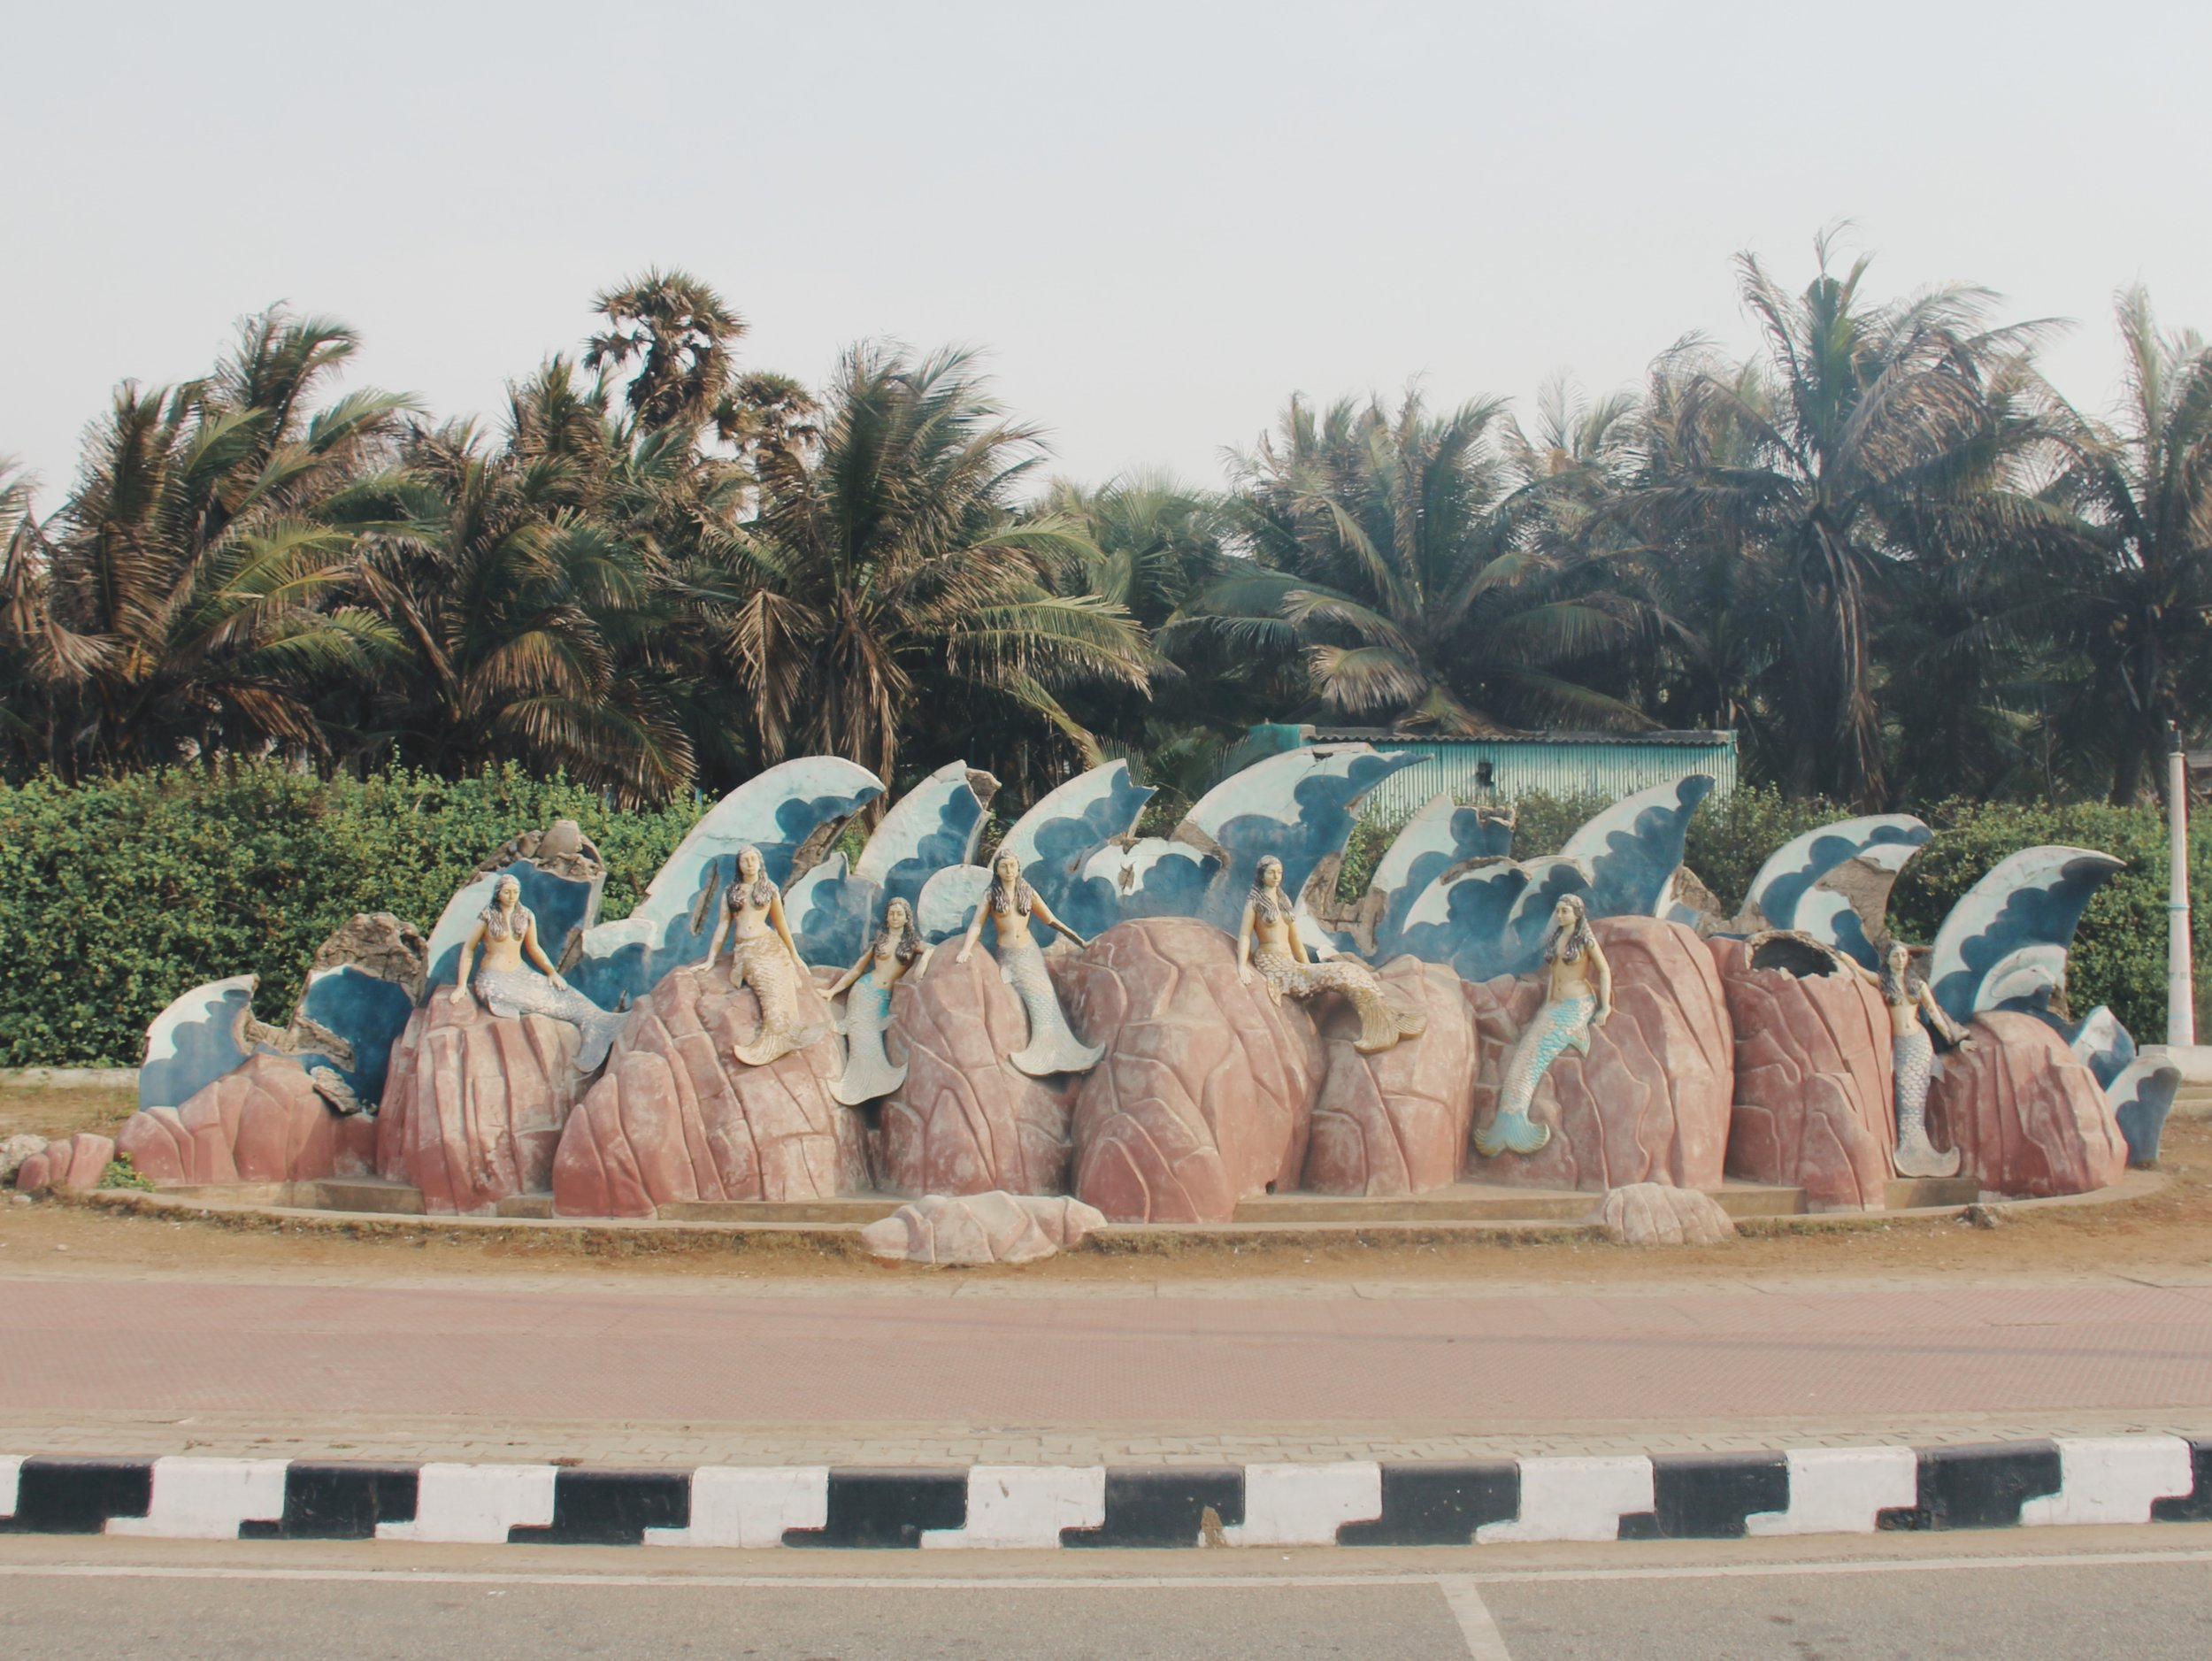 The entire seafront is lined with strange photo-op statues - like this group of mermaids.